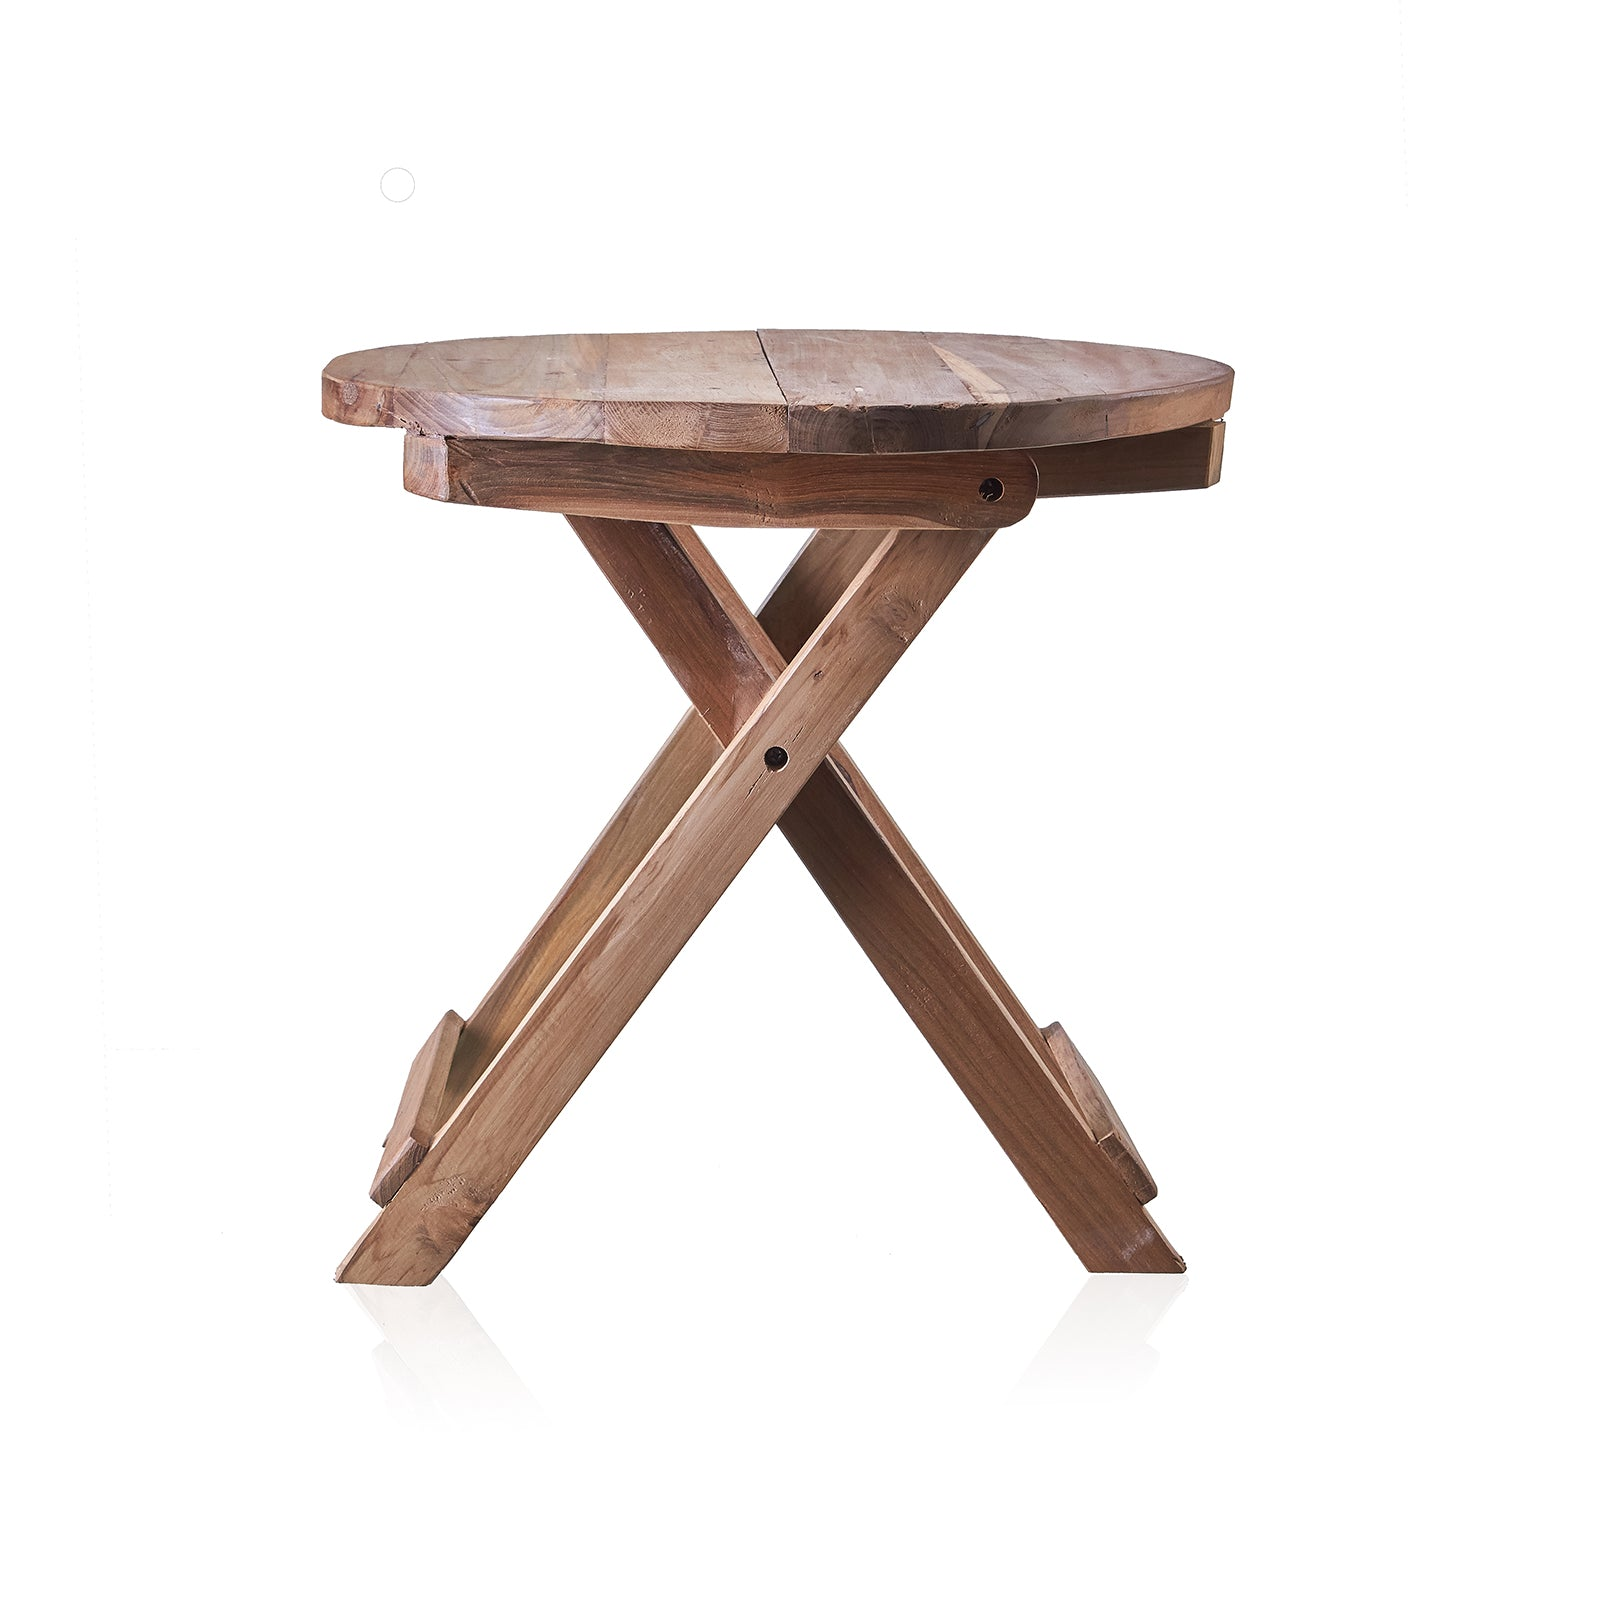 Round Folding Coffee Table - 50cm - Recycled Wood